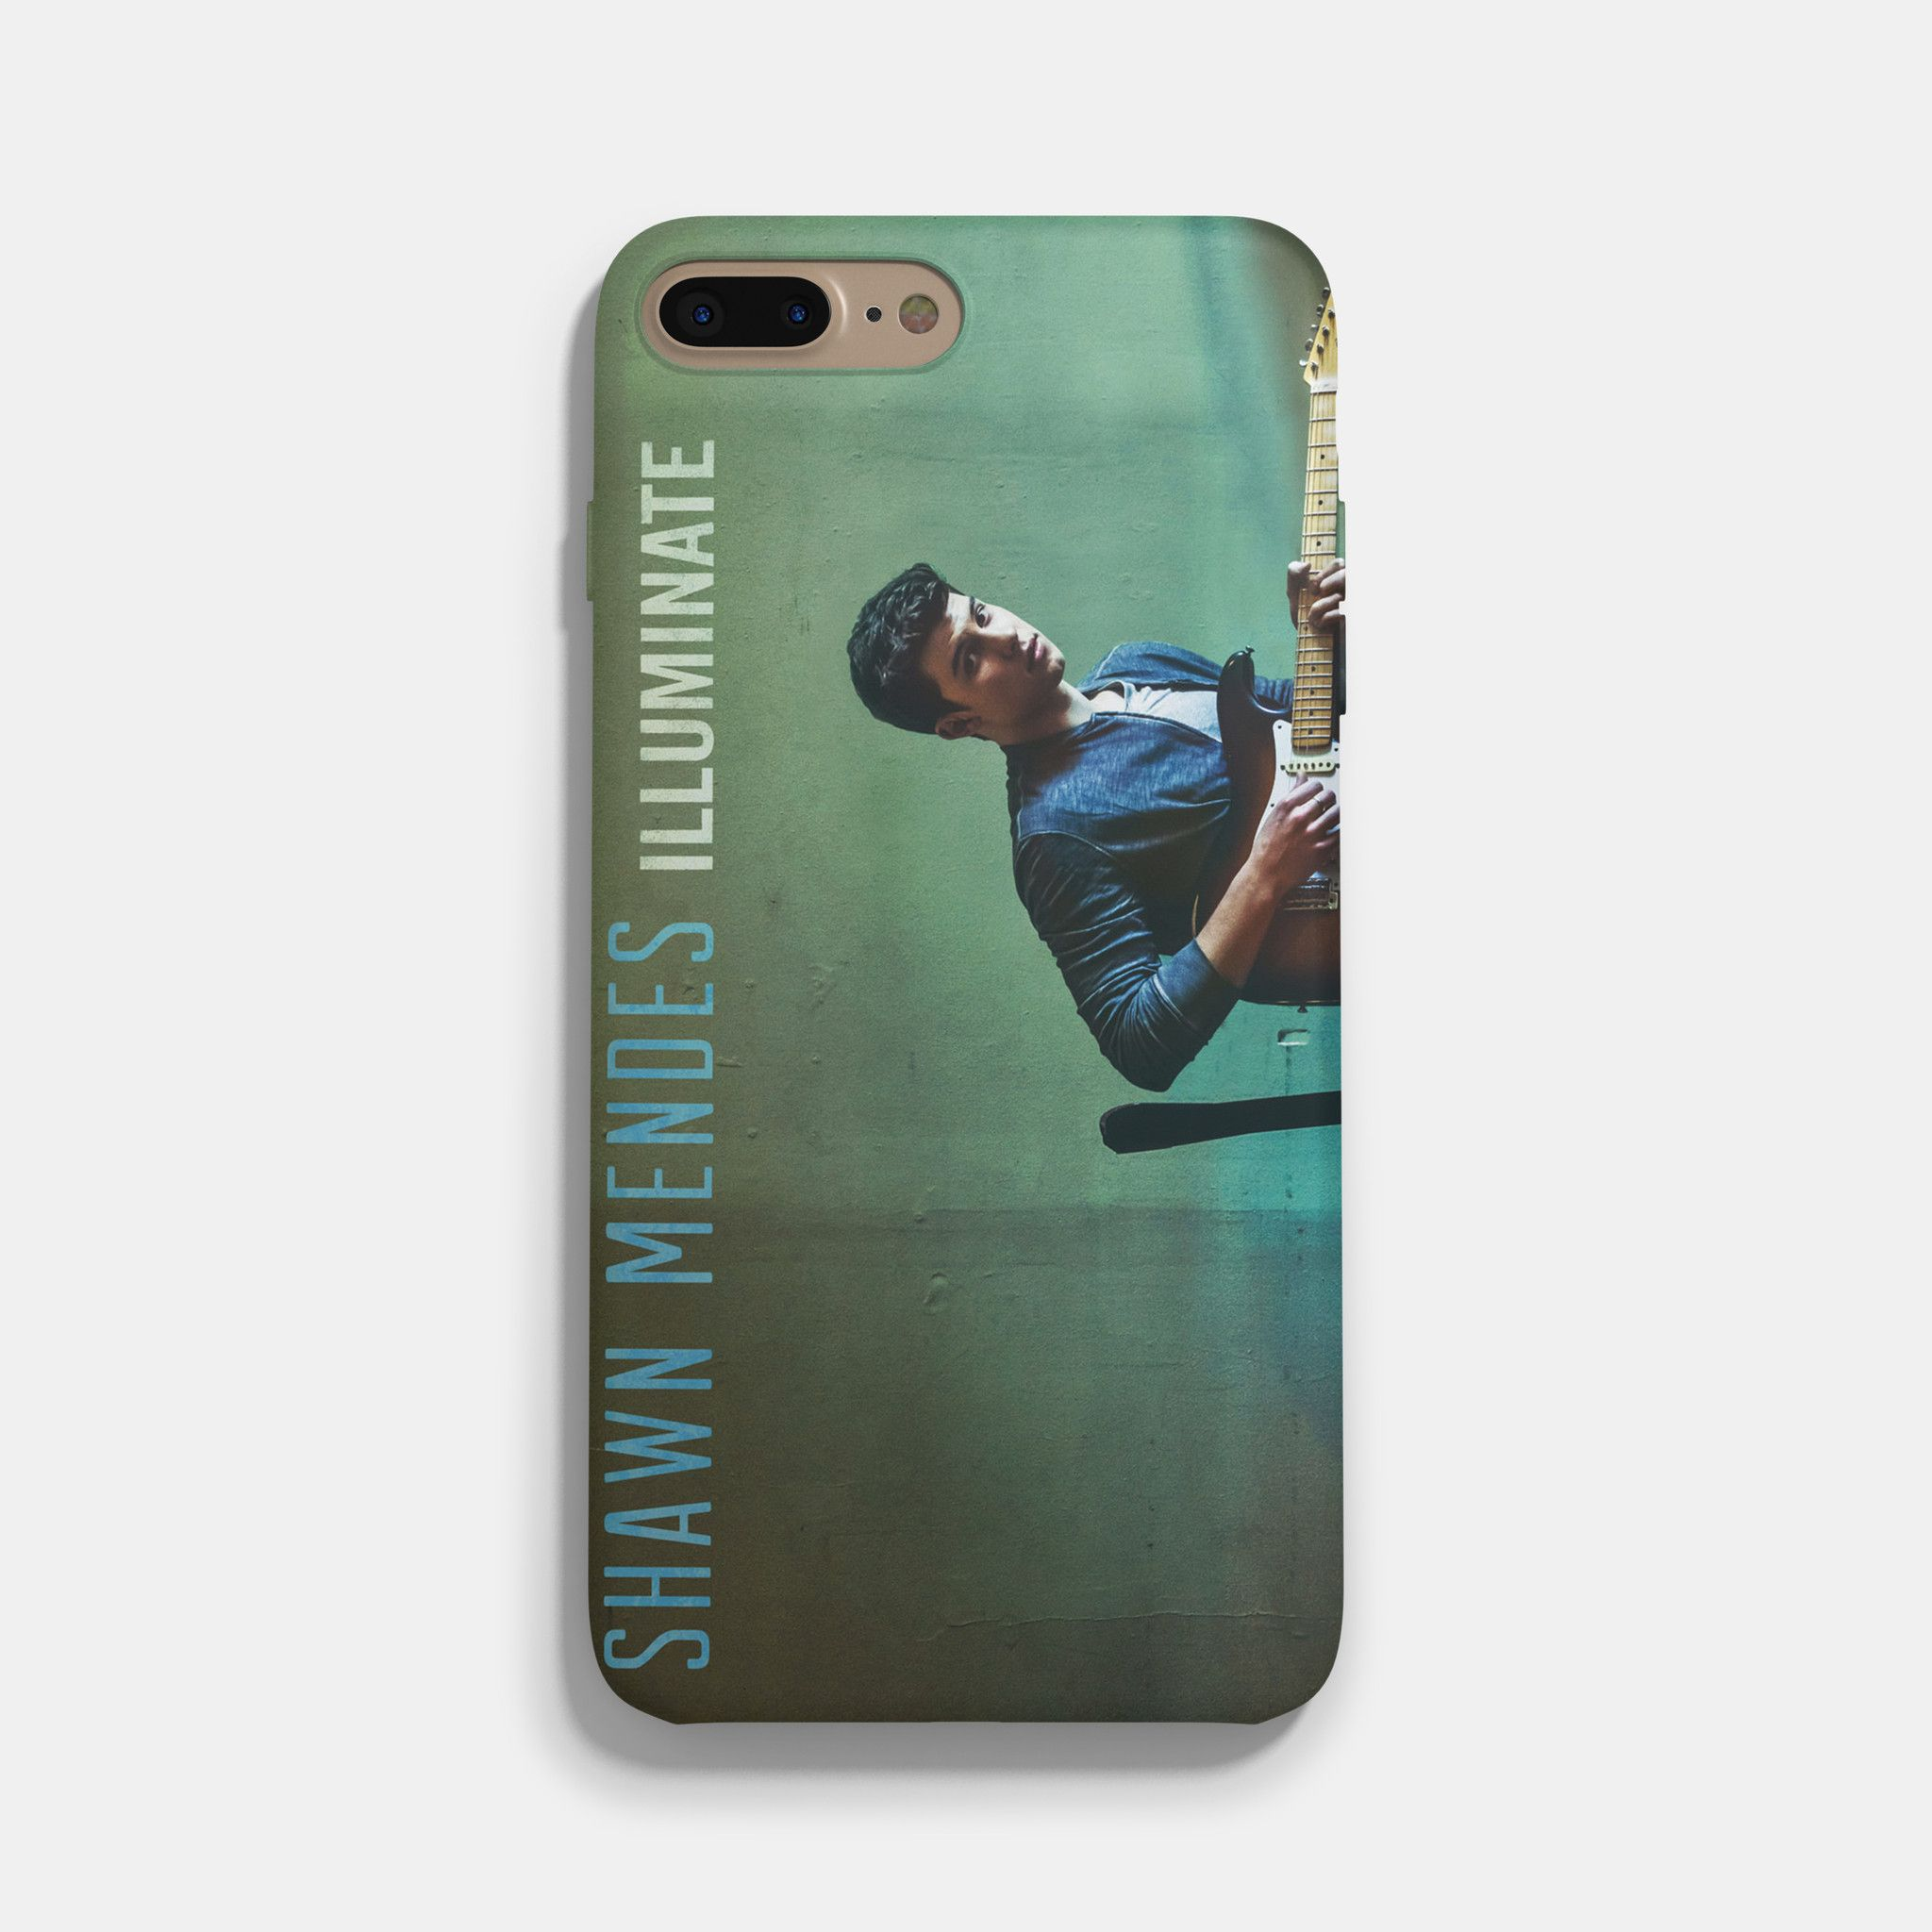 Pin By Getfreeebooks On Bookworm Phone Cases Shawn Mendes Phone Case